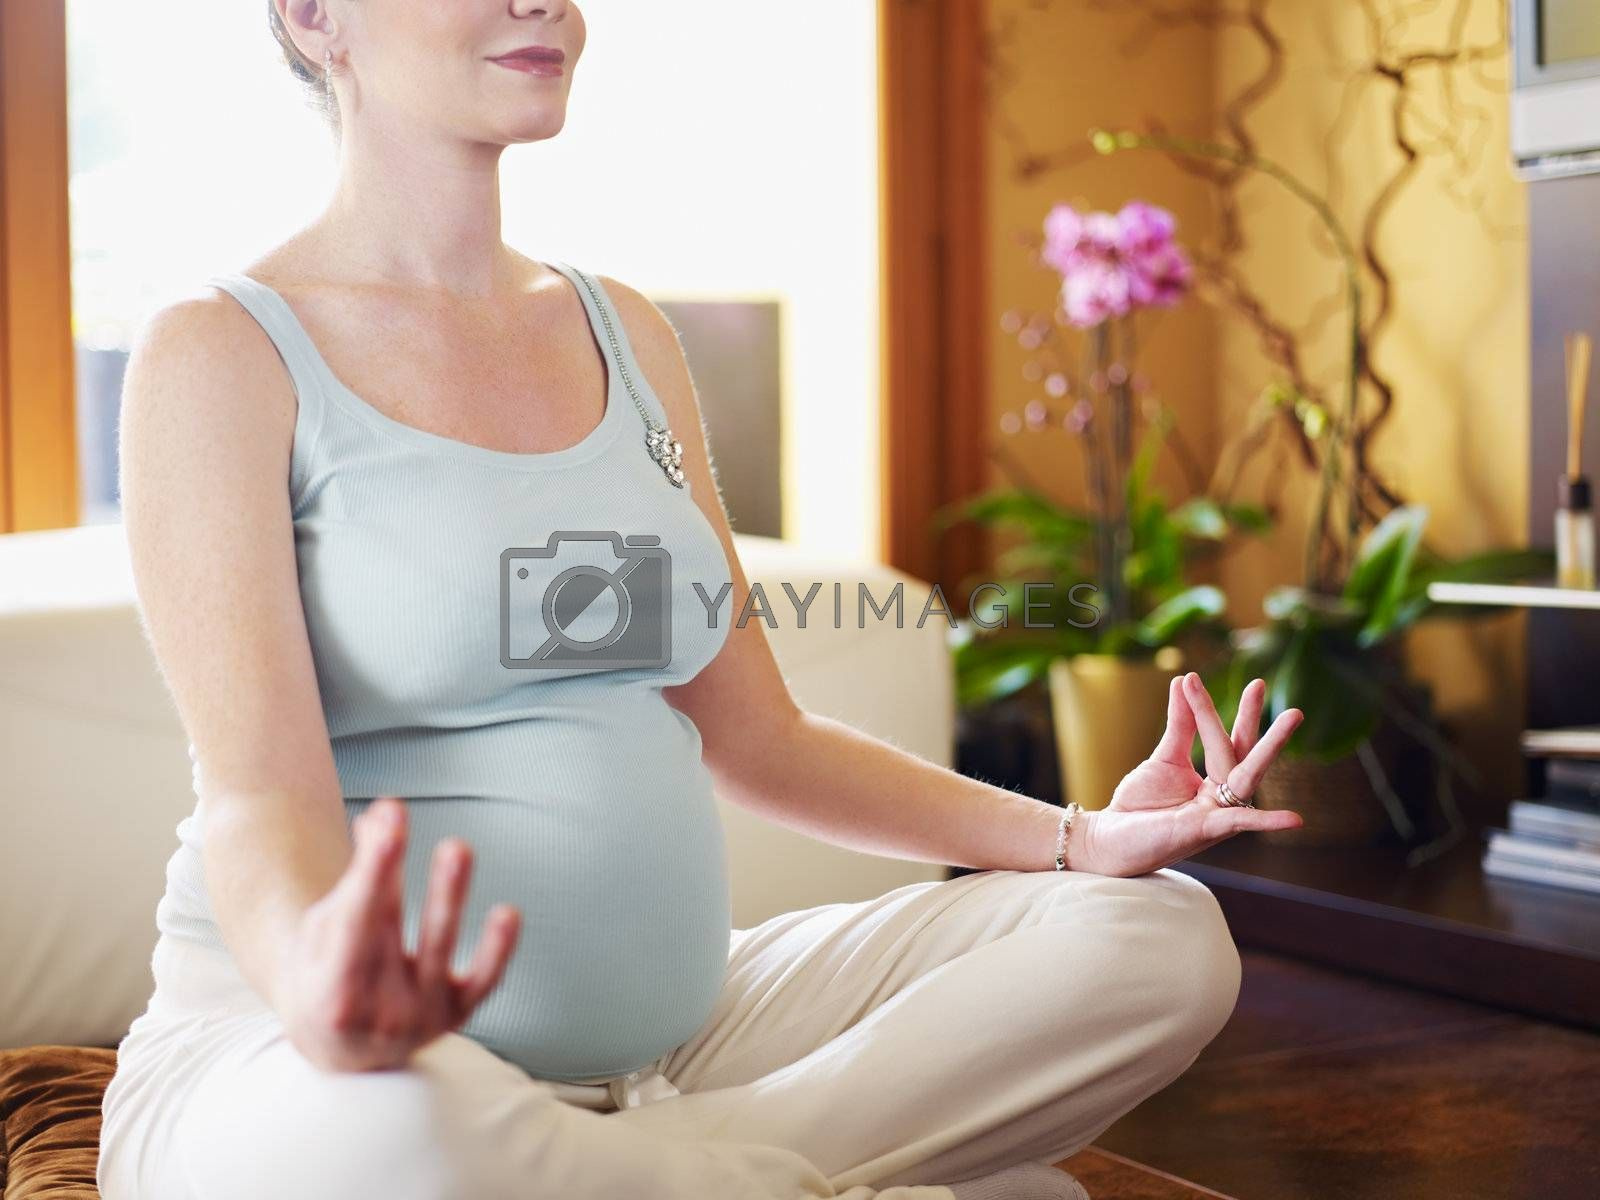 cropped view of italian 6 months pregnant woman sitting with crossed legs doing yoga exercise at home. Horizontal shape